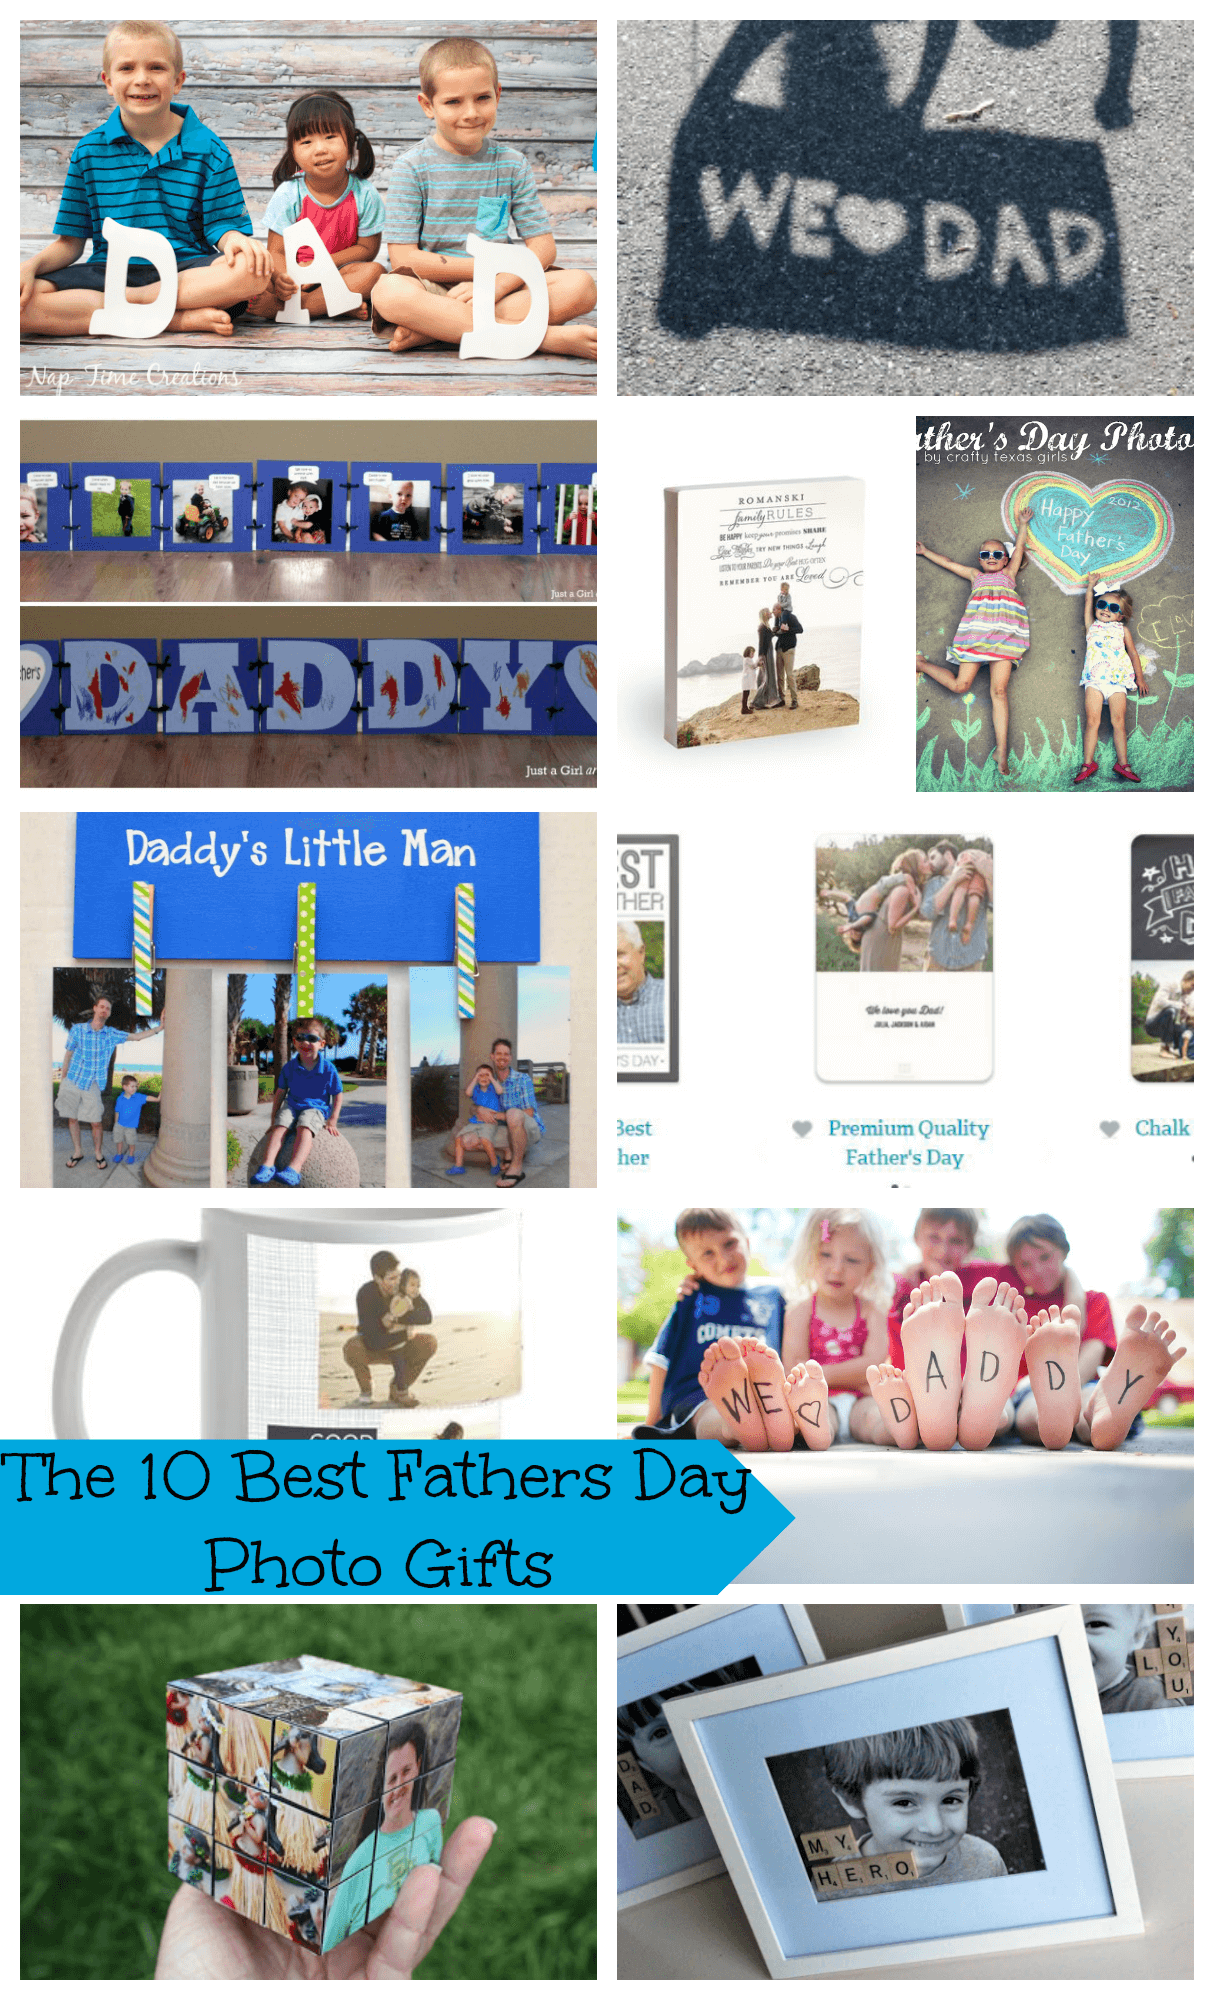 The 10 Best Fathers Day Photo Gifts DIYs from Nap-Time Creations